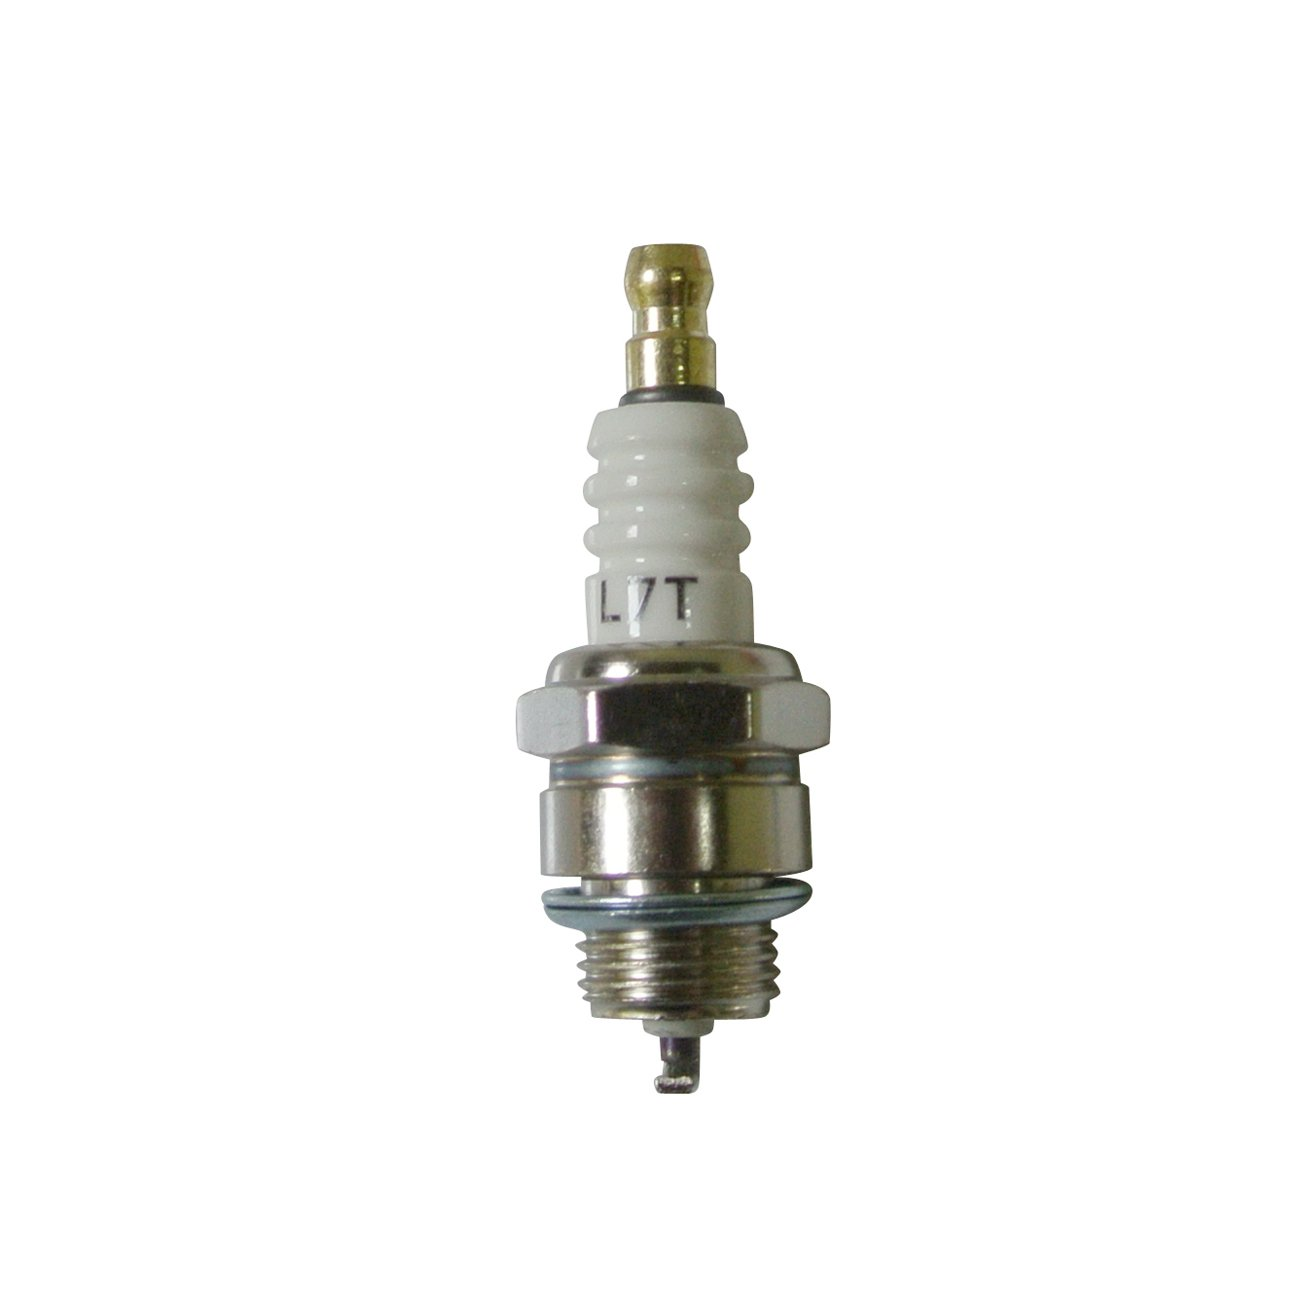 Amazon.com: Northtiger New L7T Spark Plug For Partner 350 ...